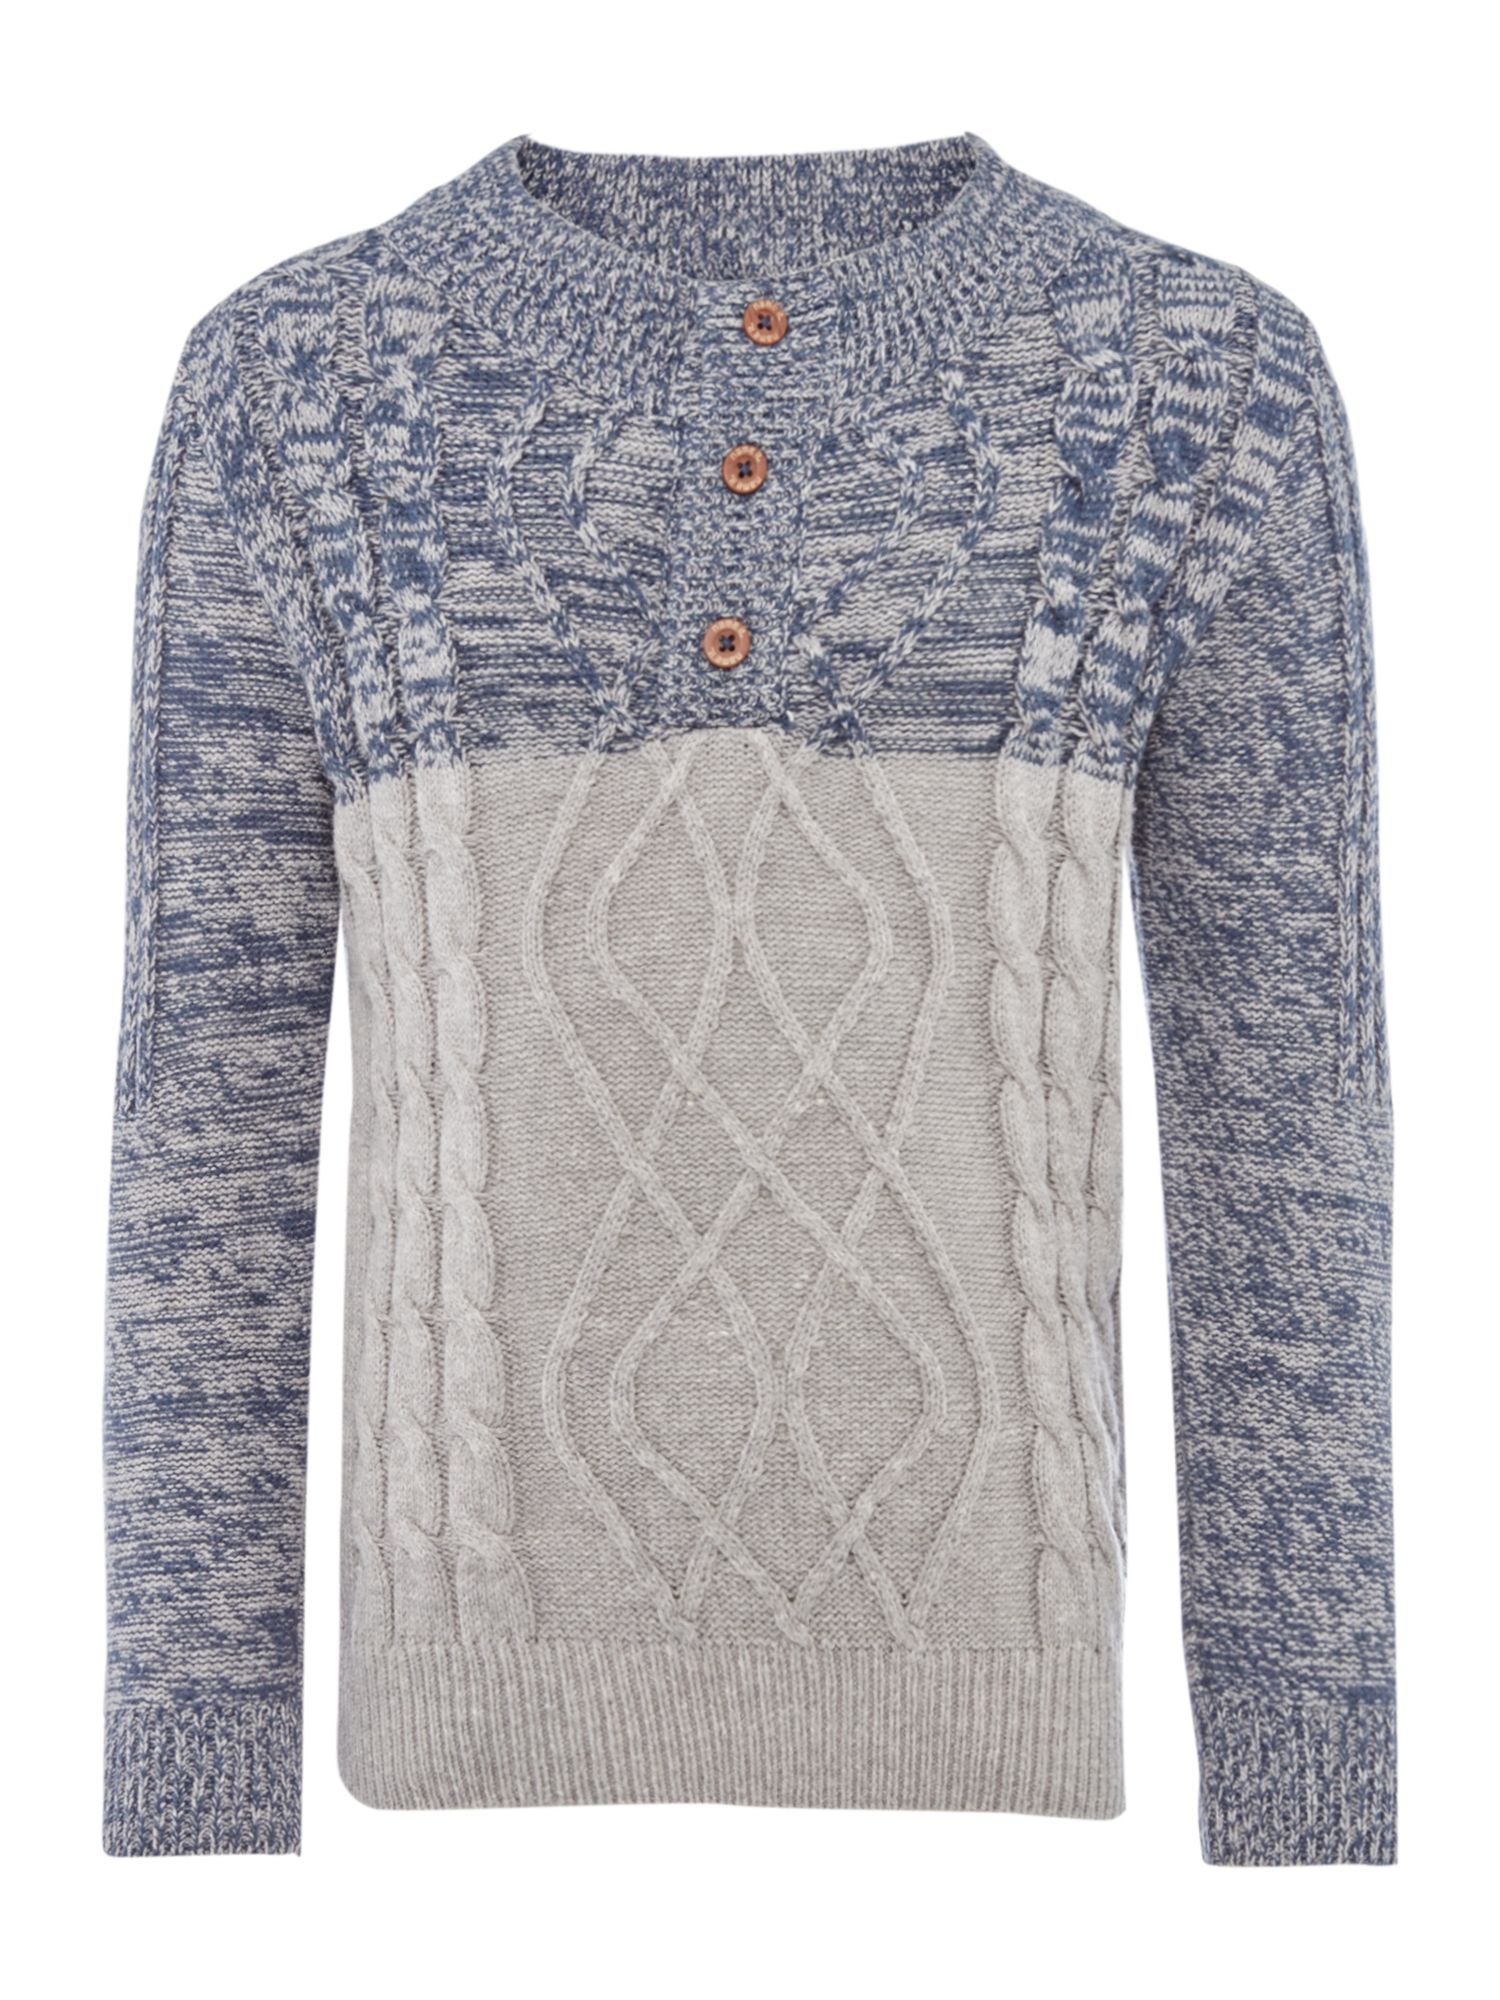 Name it name it Boys Funnel Neck Contrast Cable Knit Jumper, Navy